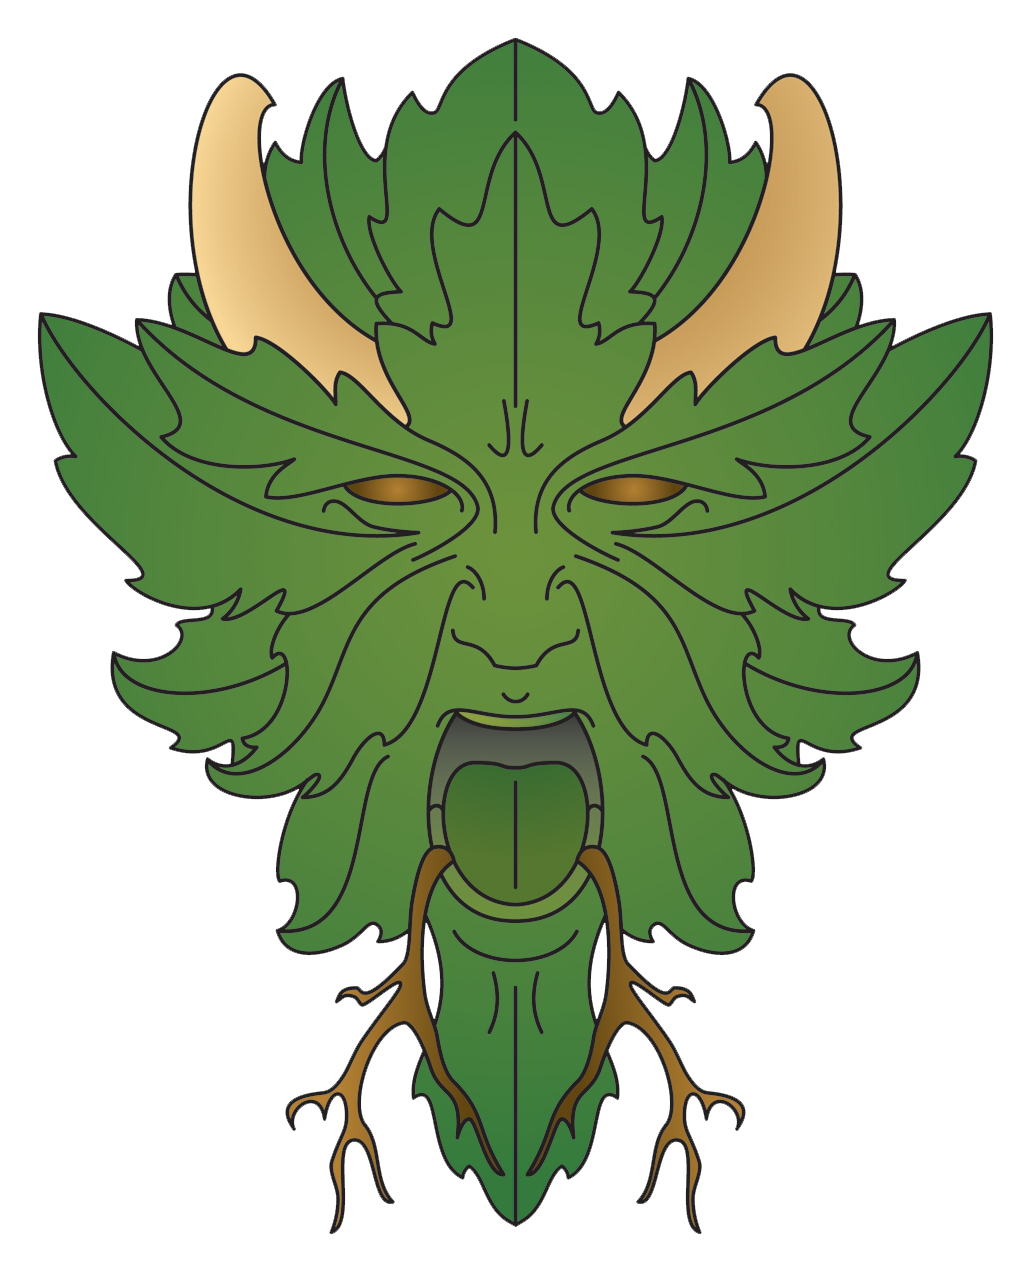 GreenMen.png